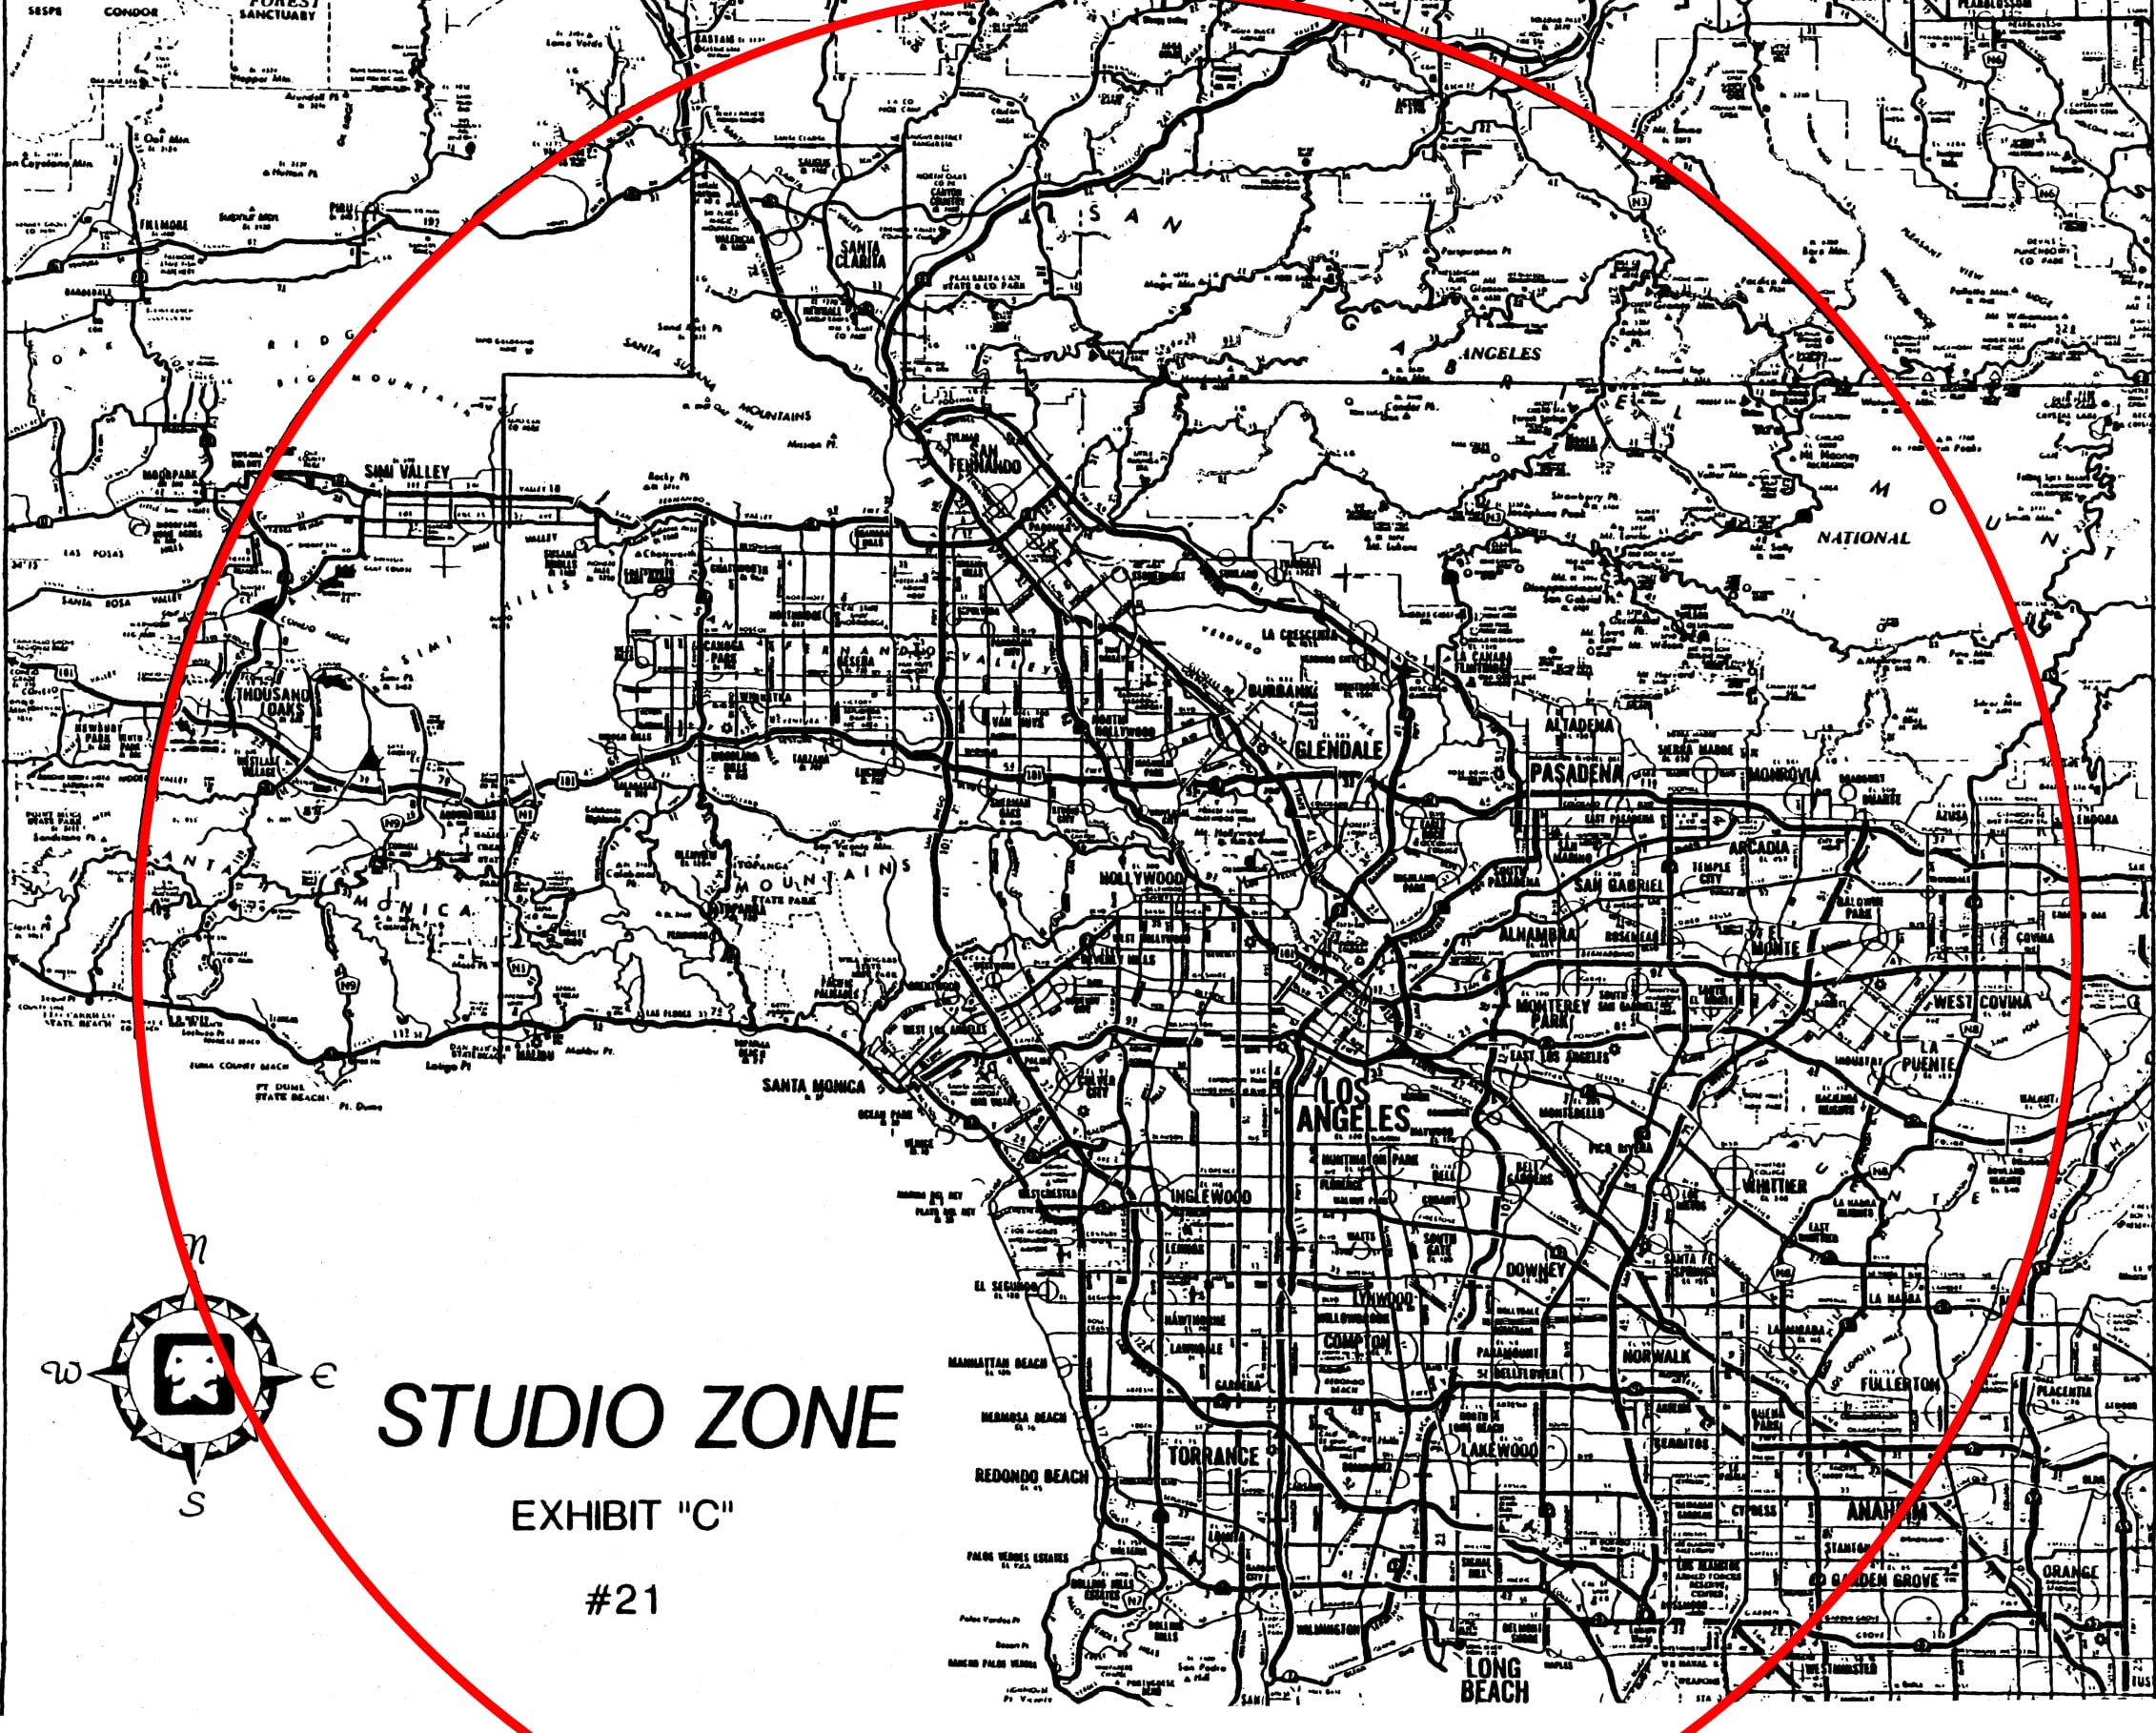 Behold, the SAG Studio Zone of Los Angeles